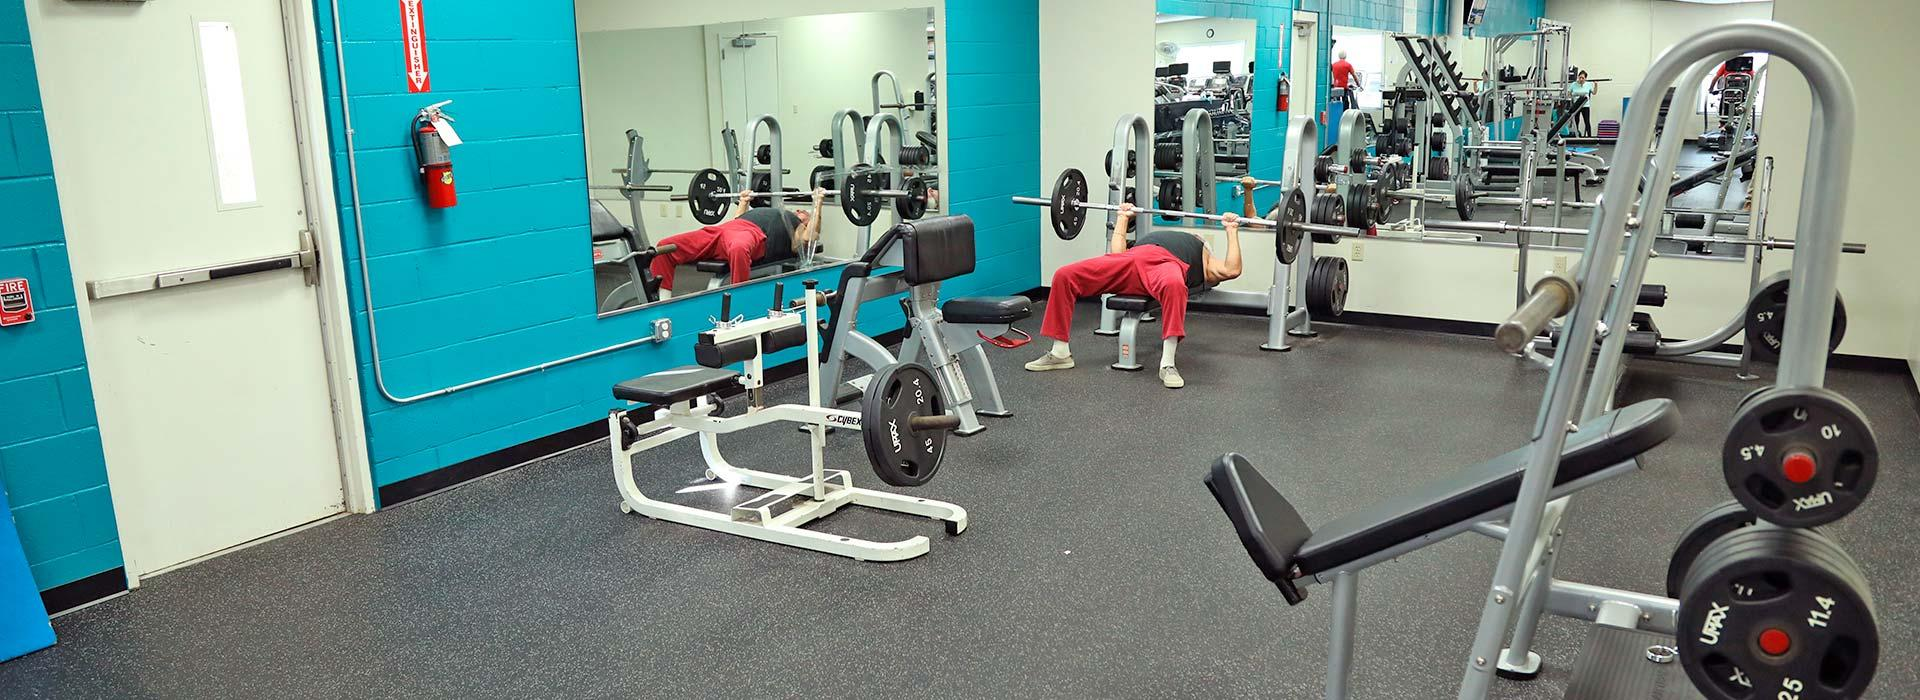 Free weight center at the Eastern Shore Family YMCA